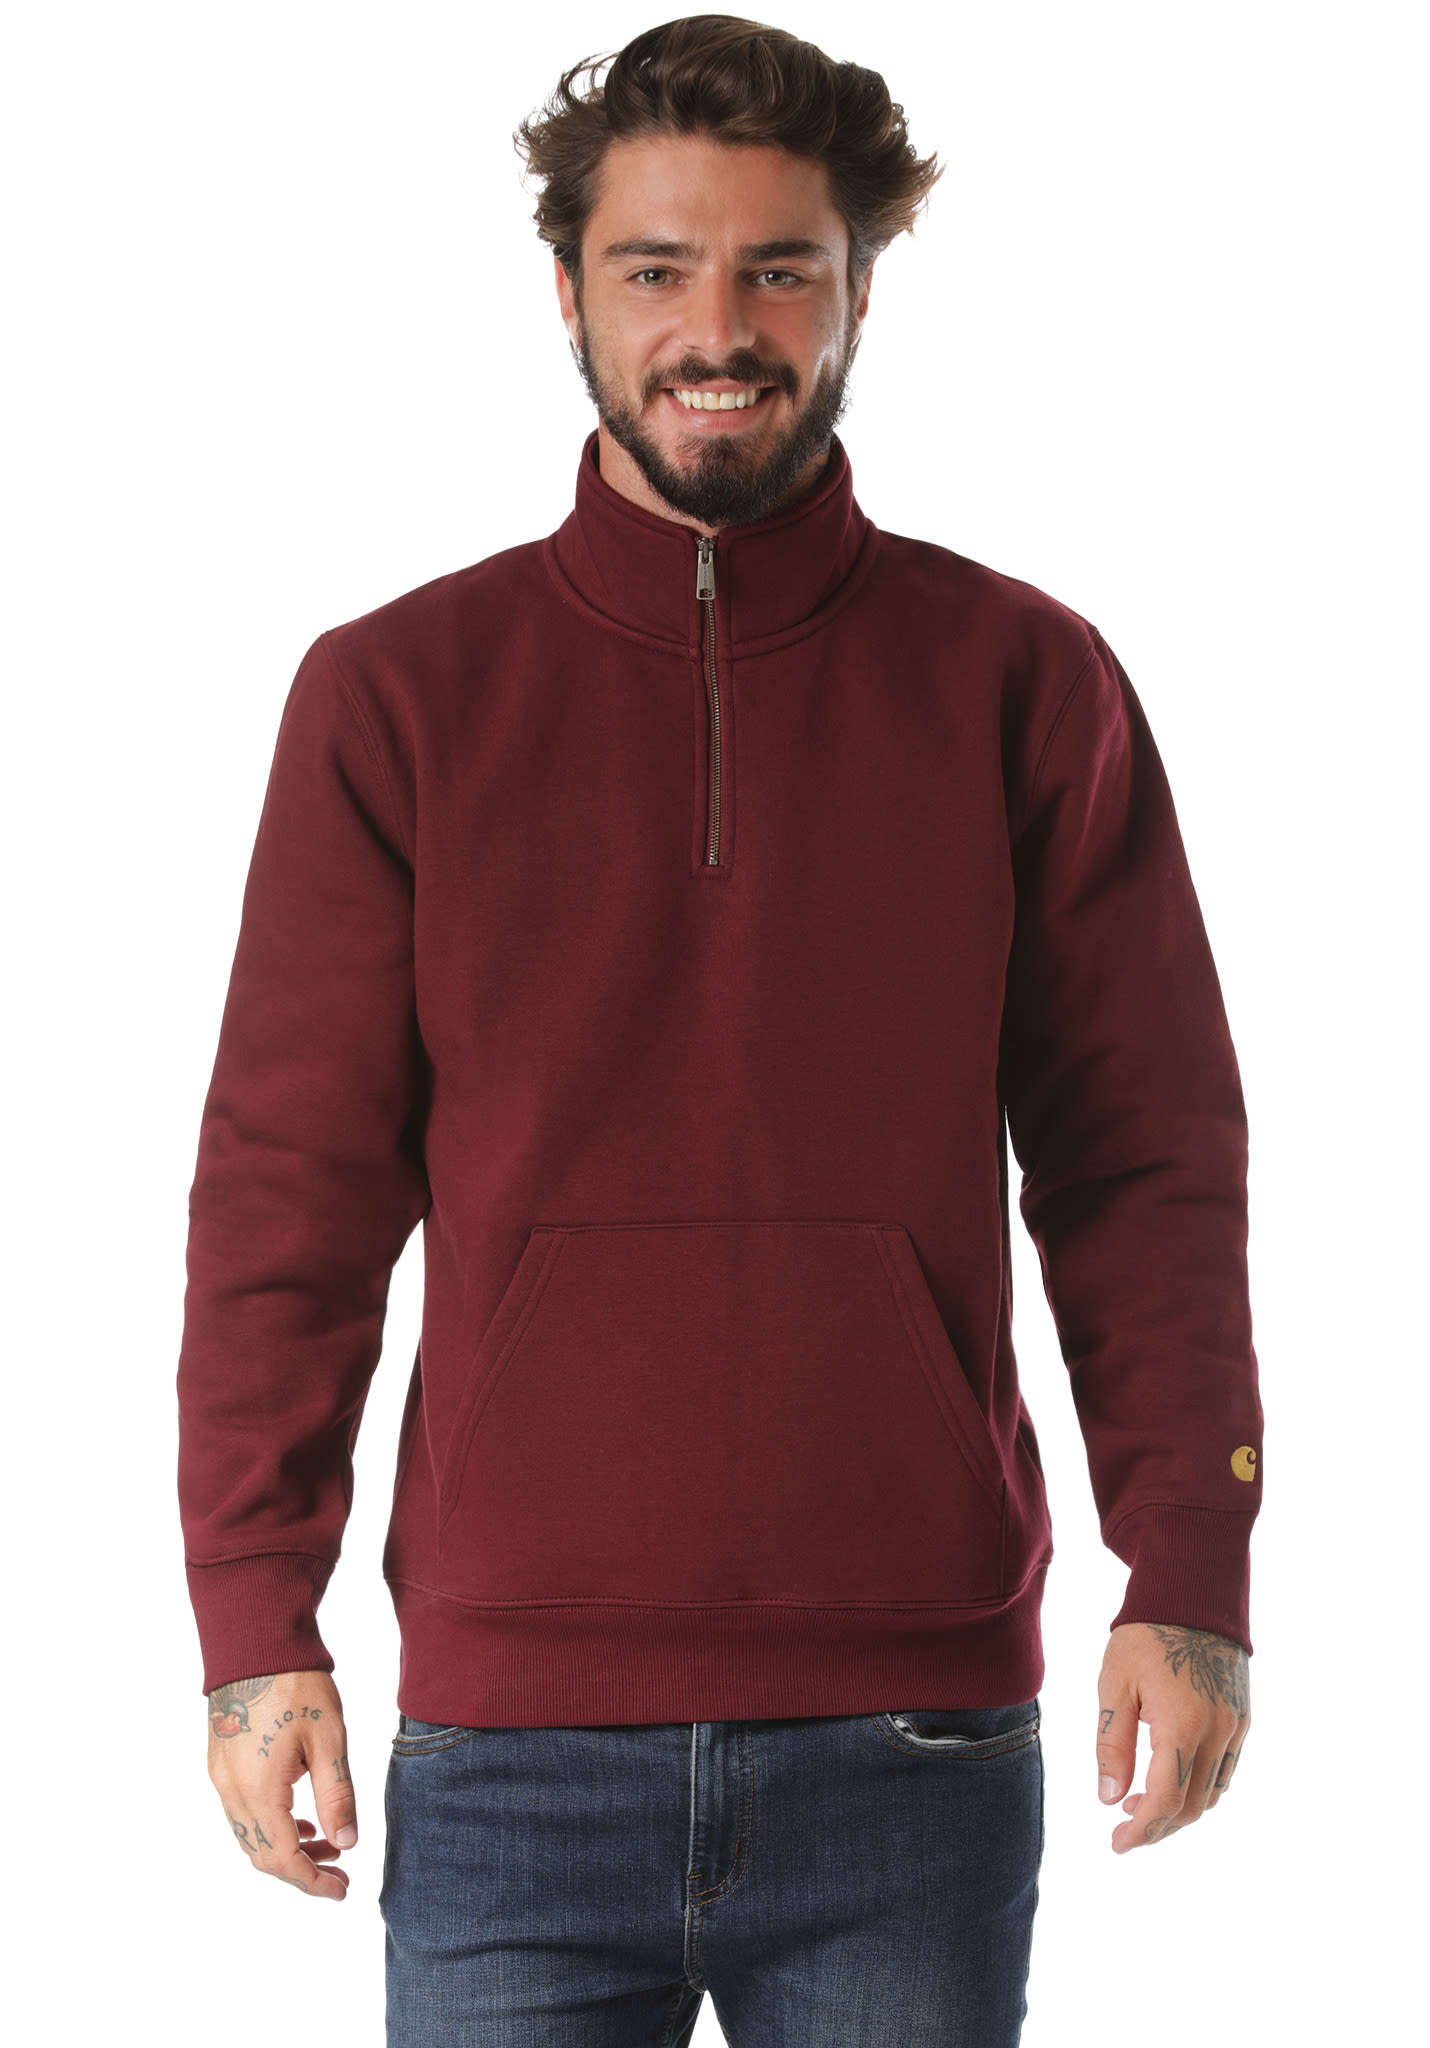 1d01d28e carhartt WIP Chase Neck Zip - Sweatshirt for Men - Red - Planet Sports